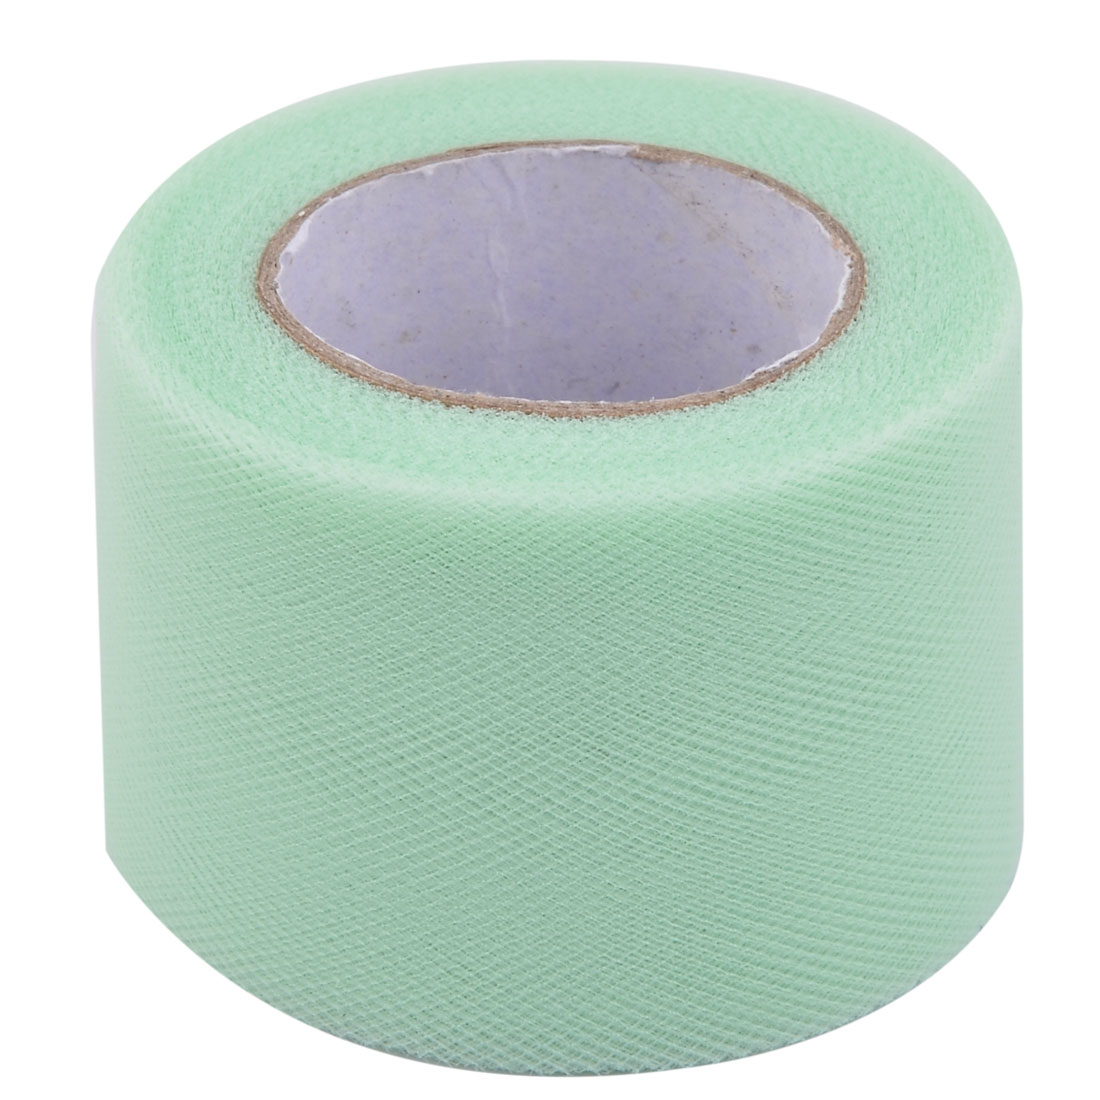 Family Polyester DIY Tutu Skirt Decor Craft Tulle Spool Roll Pale Green 2 Inch x 25 Yards